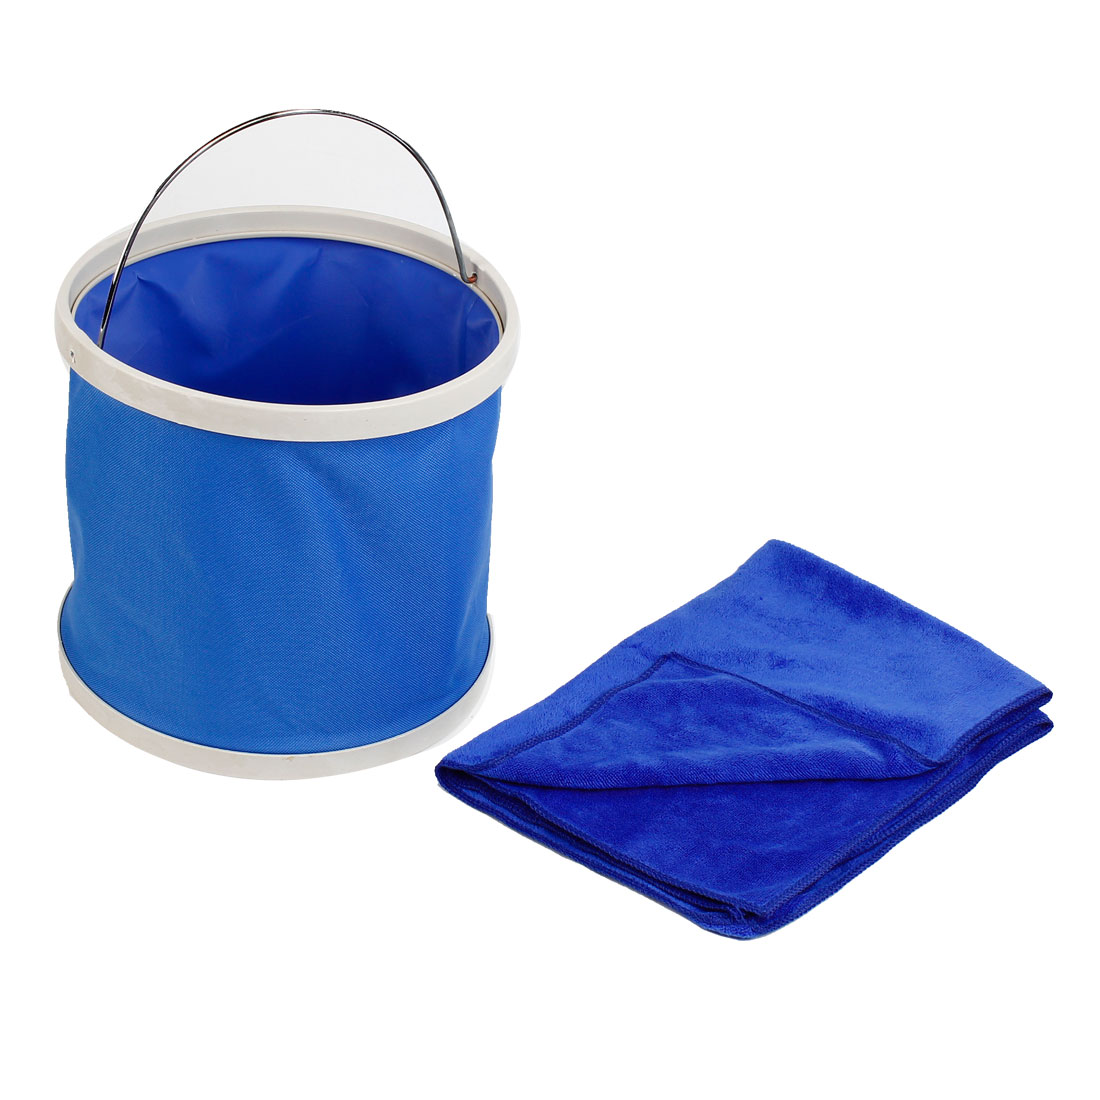 Auto Folding Bucket Container Trash Bin Blue 9-11L w Towel